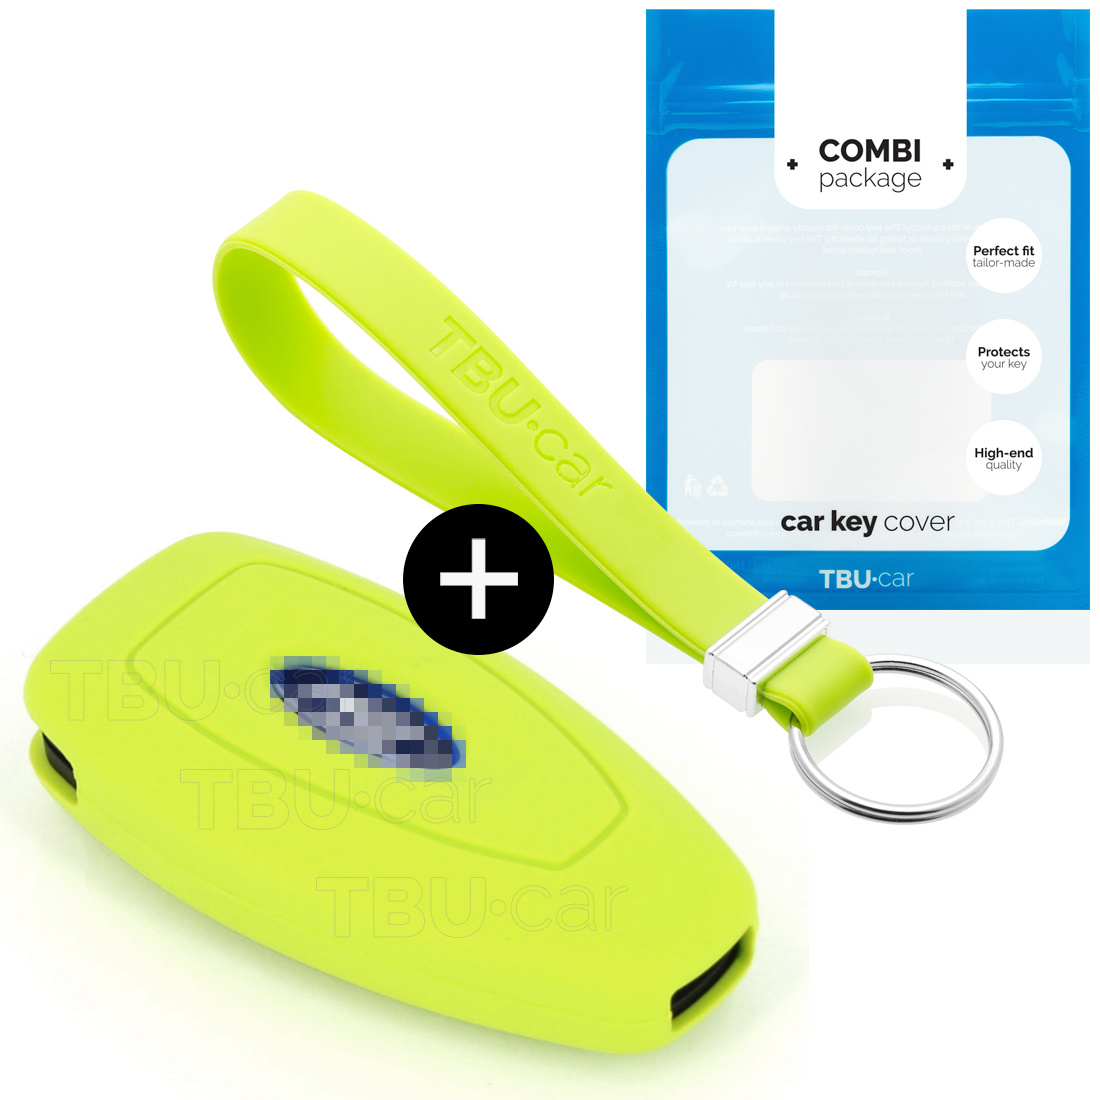 Ford Car key cover - Silicone Protective Remote Key Shell - FOB Case Cover - Lime